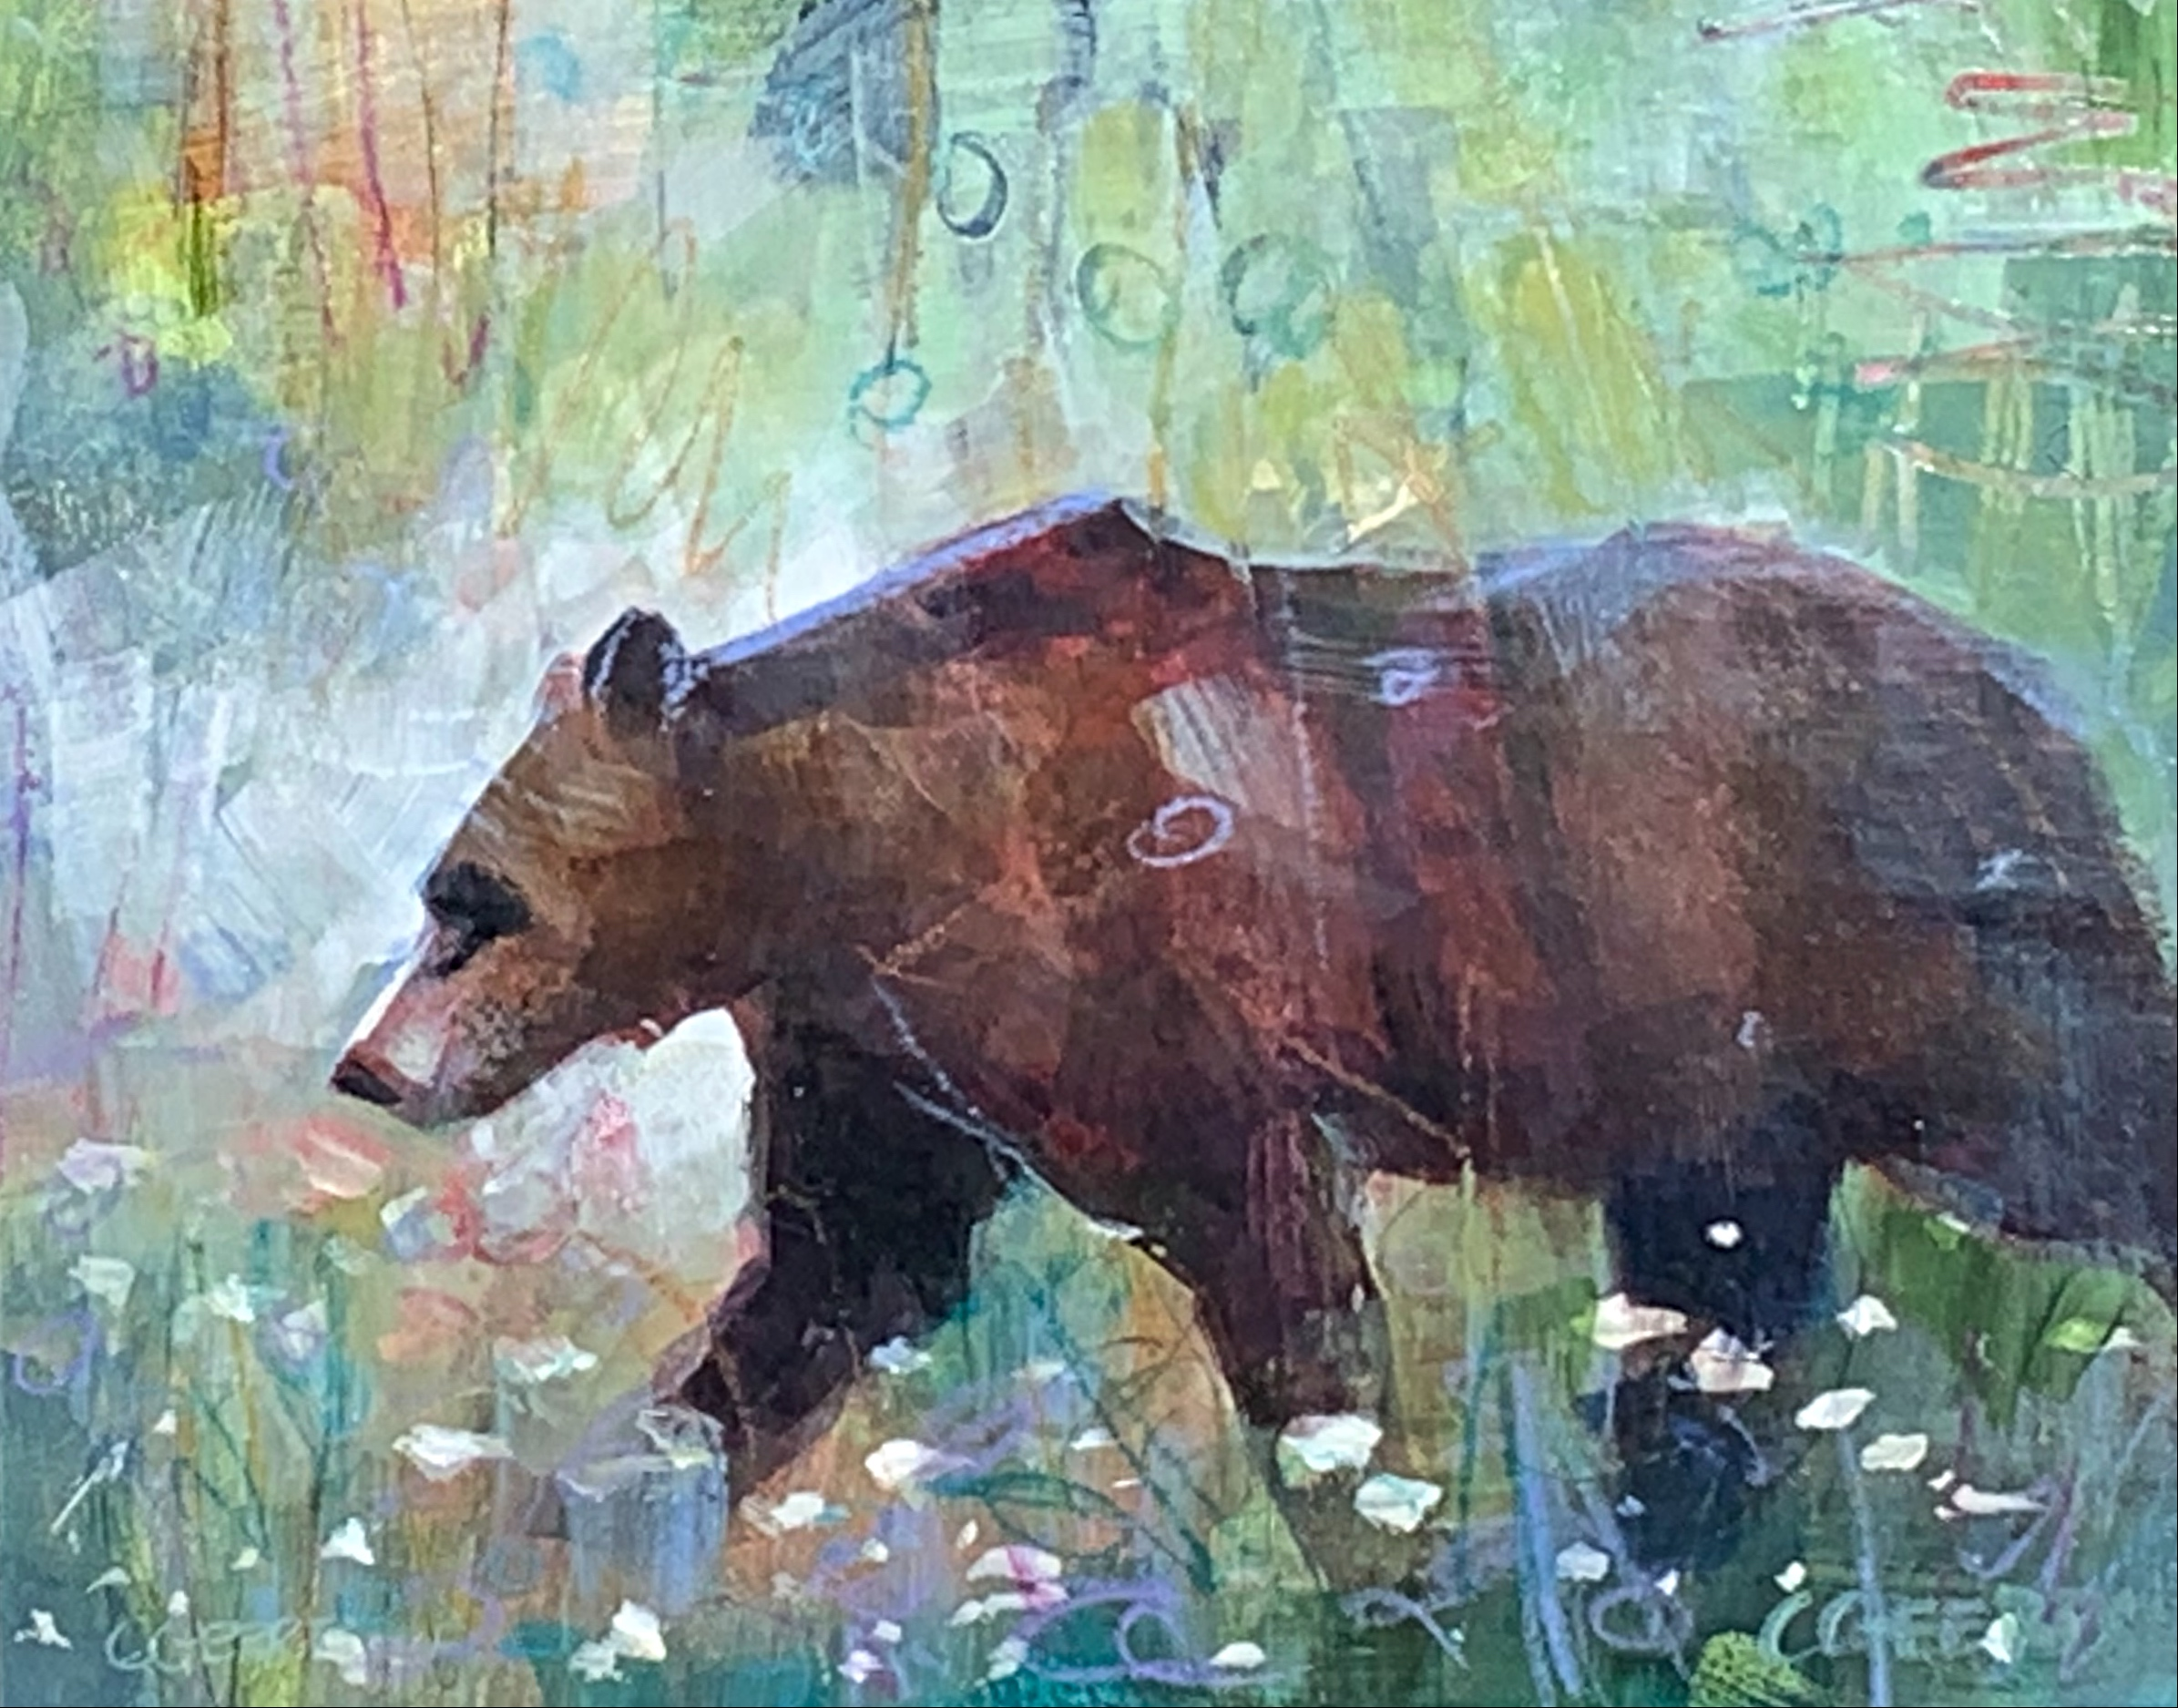 Minding her own Business, mixed media bear painting by Connie Geerts | Effusion Art Gallery + Cast Glass Studio, Invermere BC